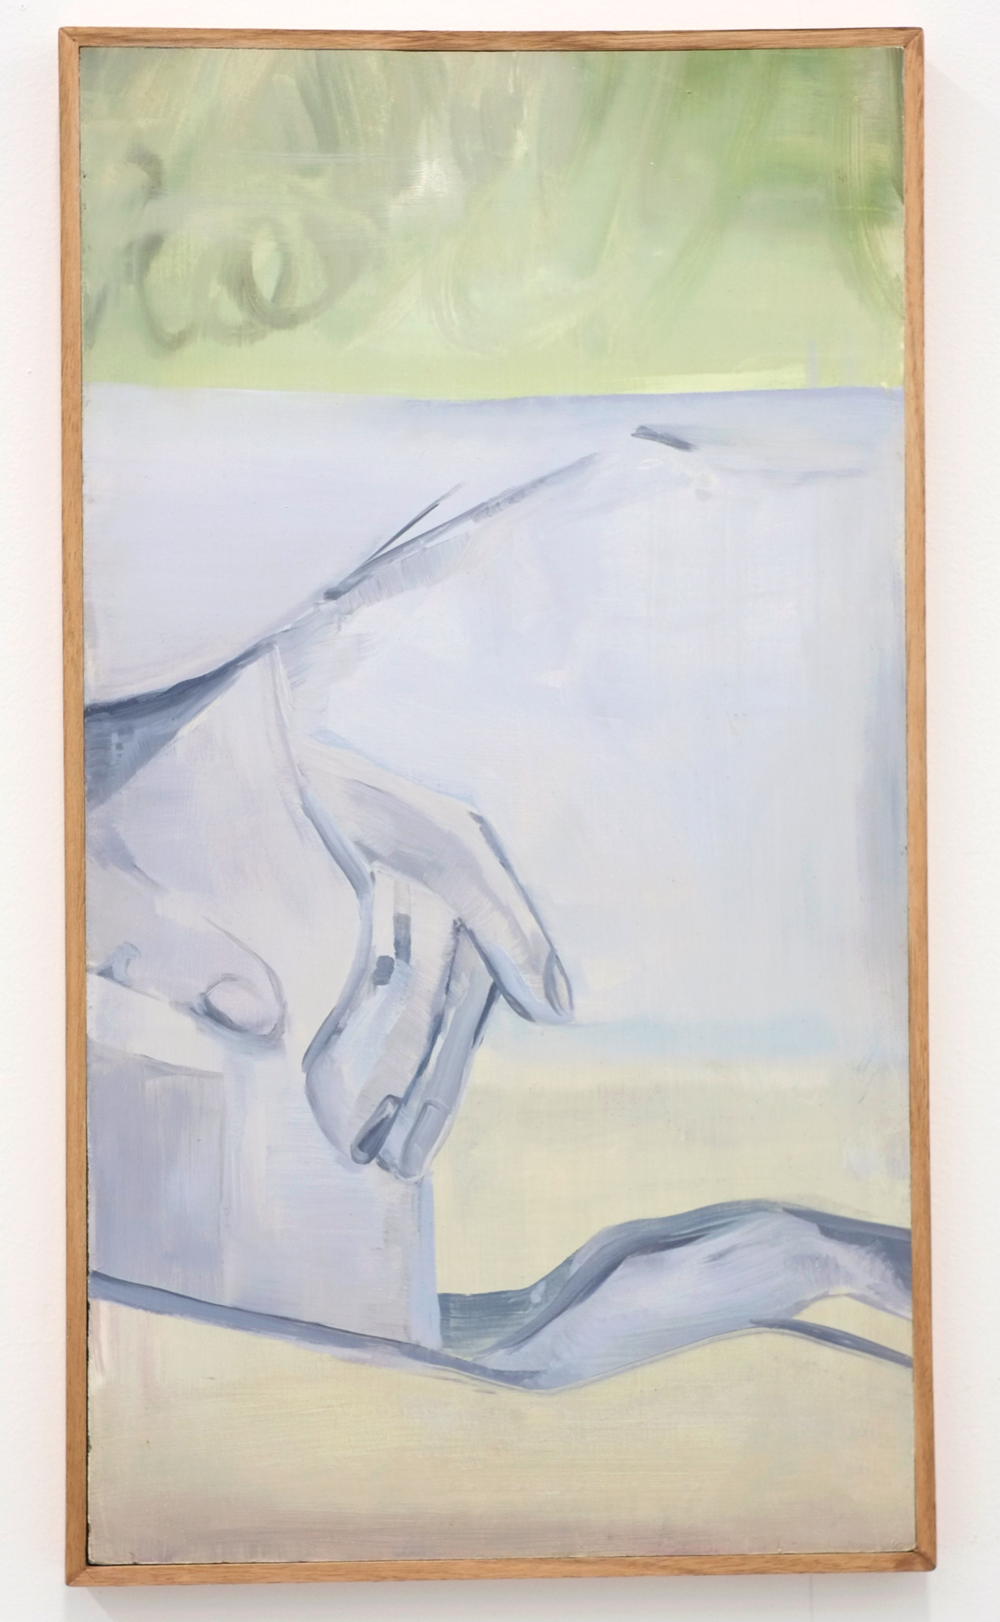 Grey Glass, oil on board, 2016